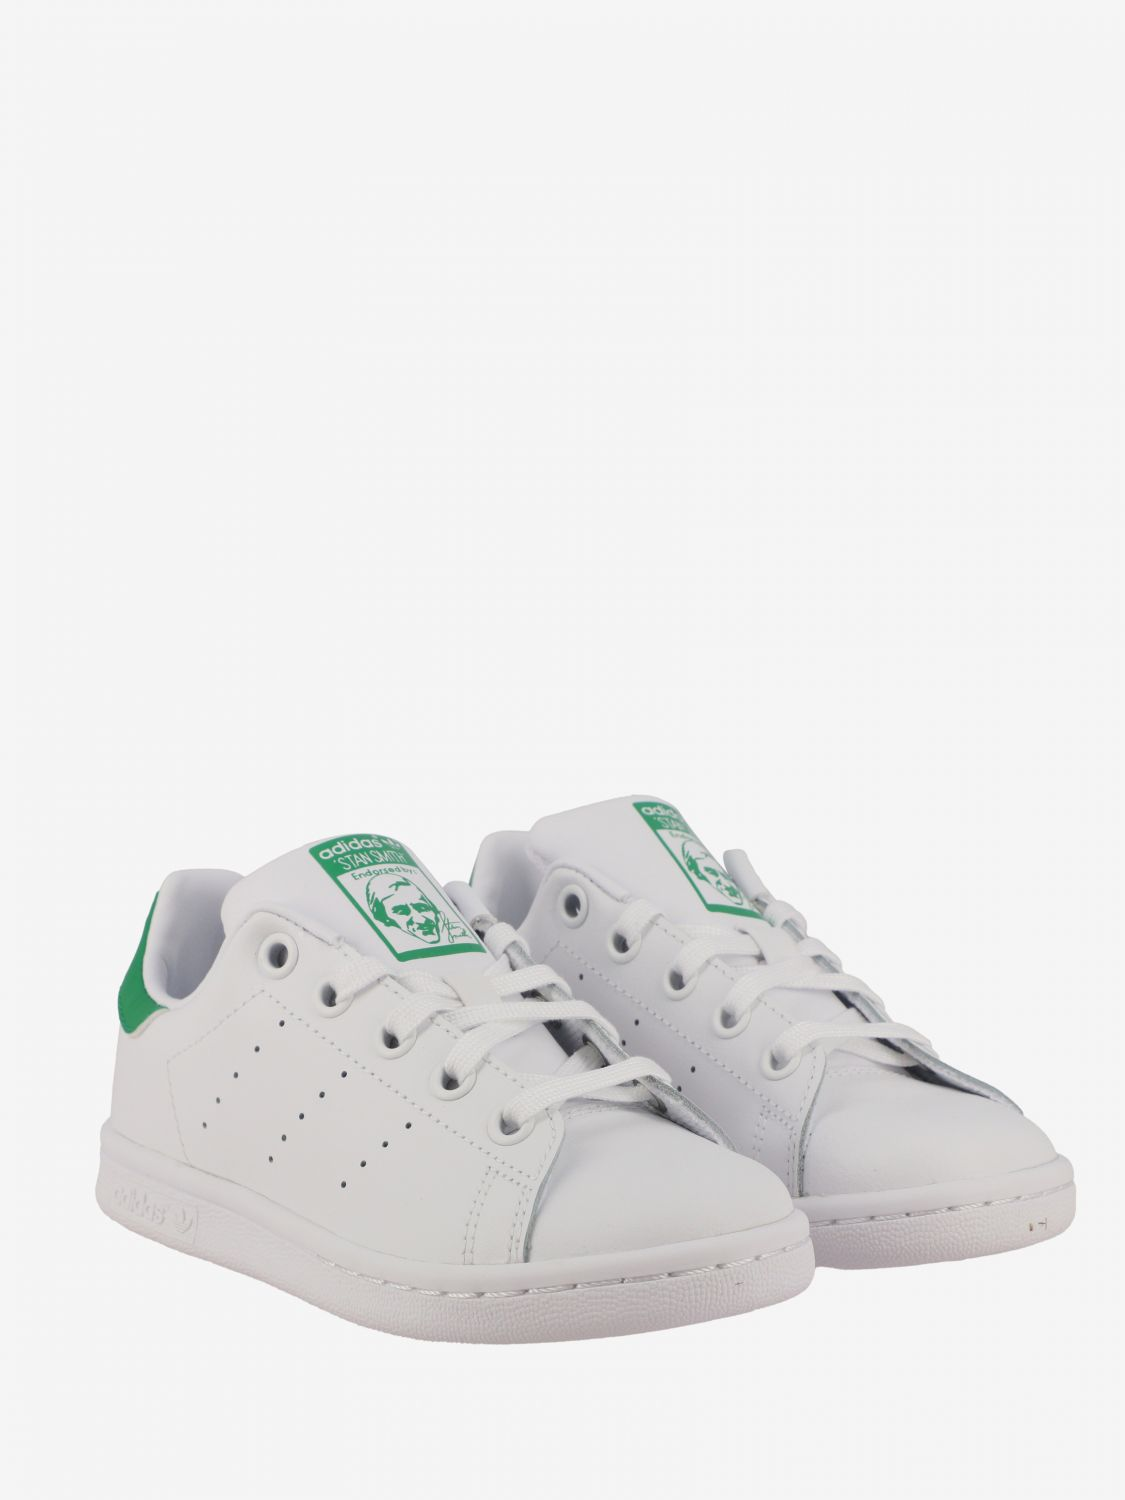 Shoes Adidas Originals: Stan smith Adidas Originals leather sneakers white 2